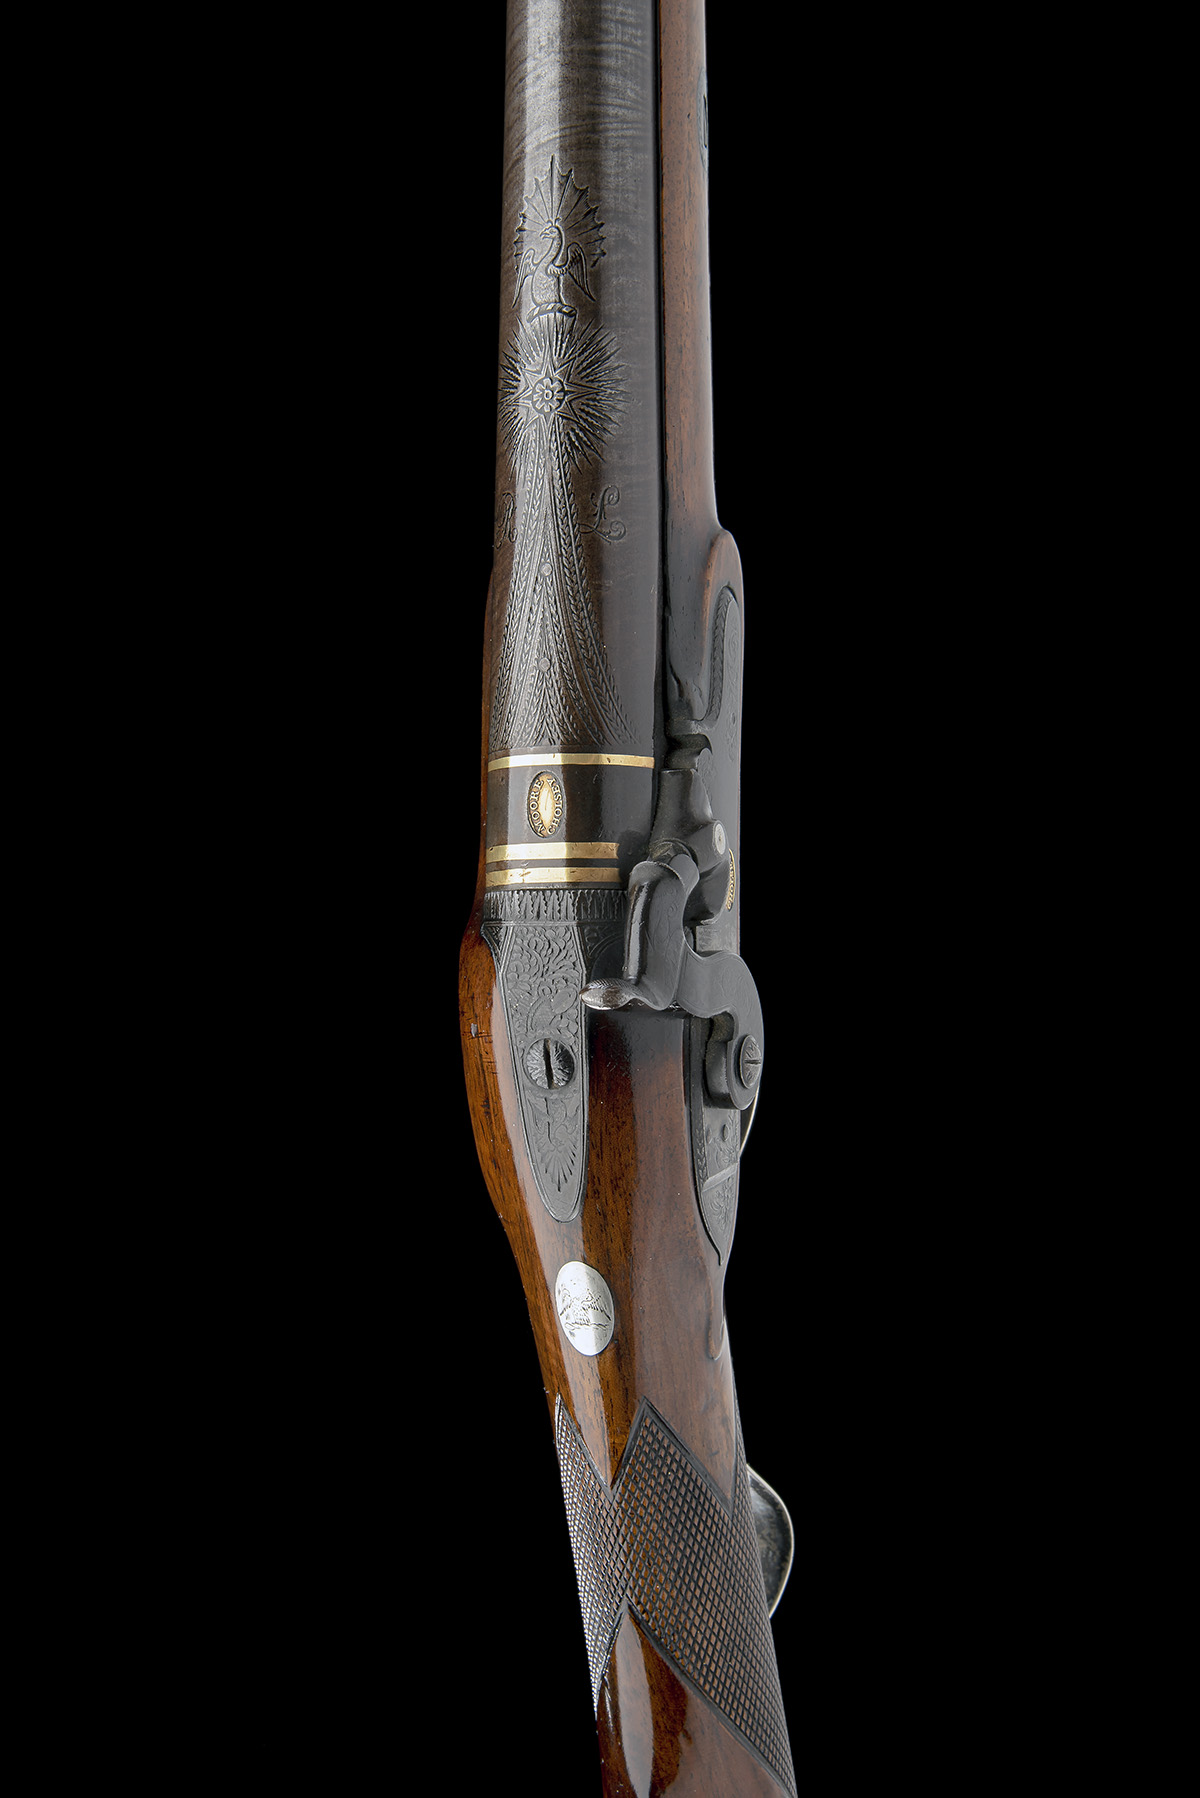 MOORE, CHOLSEY A GOOD 16-BORE PERCUSSION SILVER-MOUNTED SINGLE-BARRELLED SPORTING-GUN, no visible - Image 4 of 9